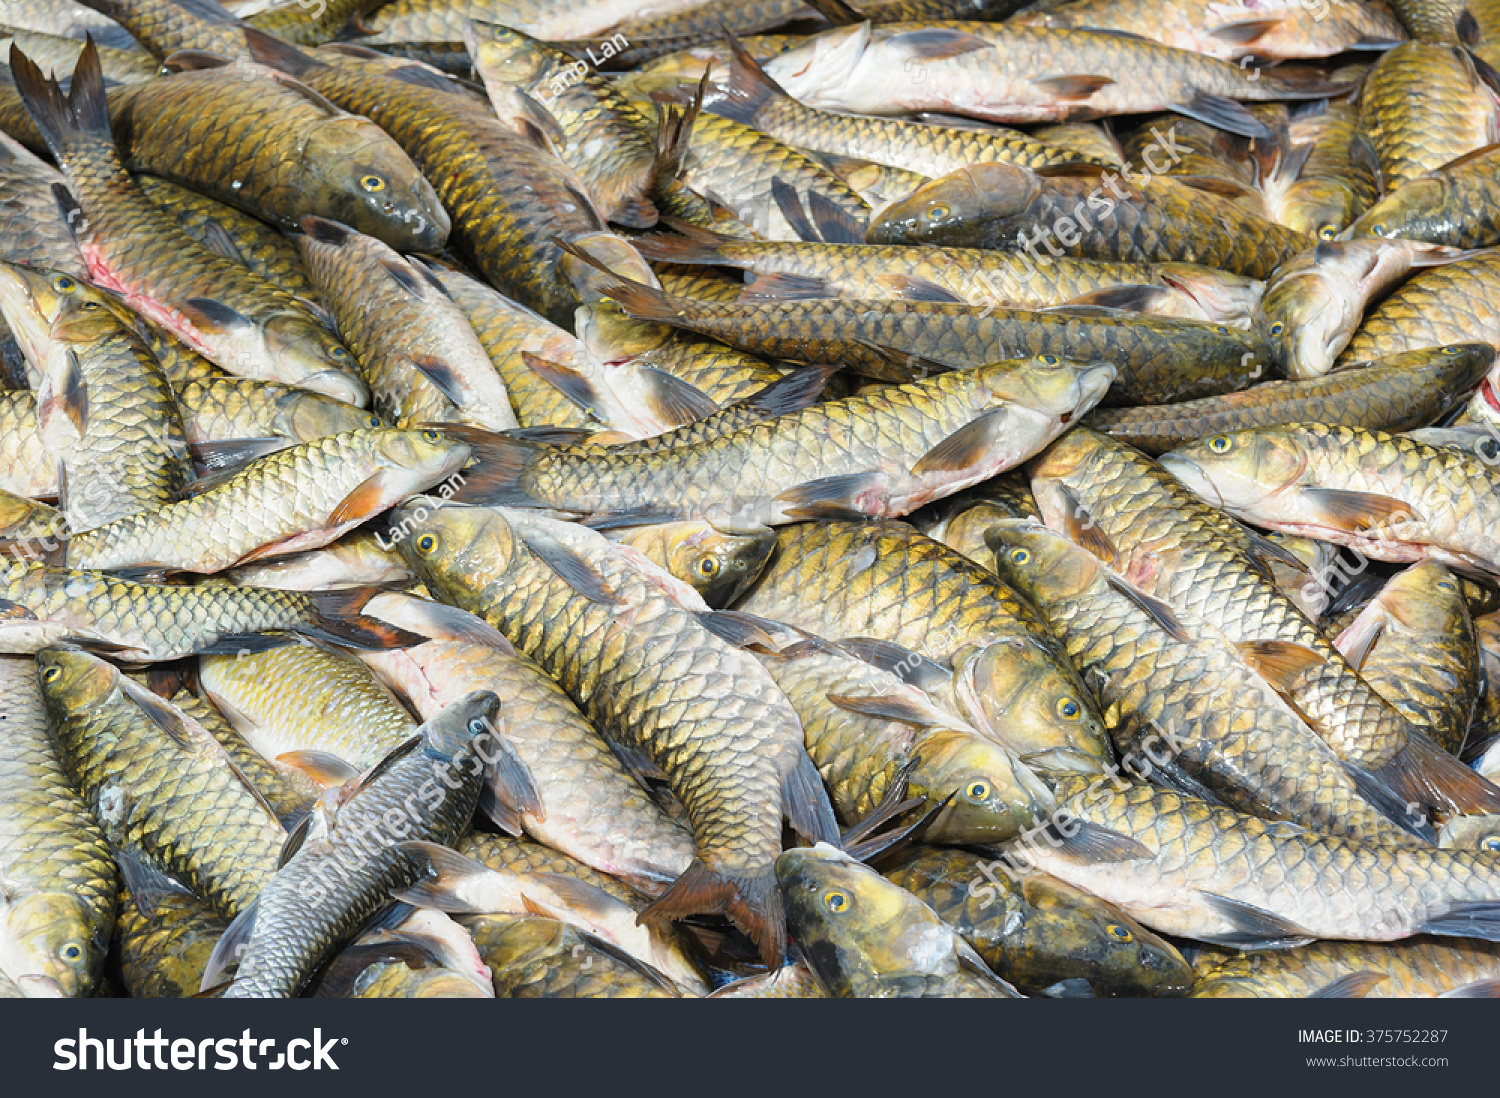 Freshwater fish in malaysia - Malaysian Fresh Water Fish Called Malaysian Mahseer Or Kelah Or Pelian This Fish Is Famous